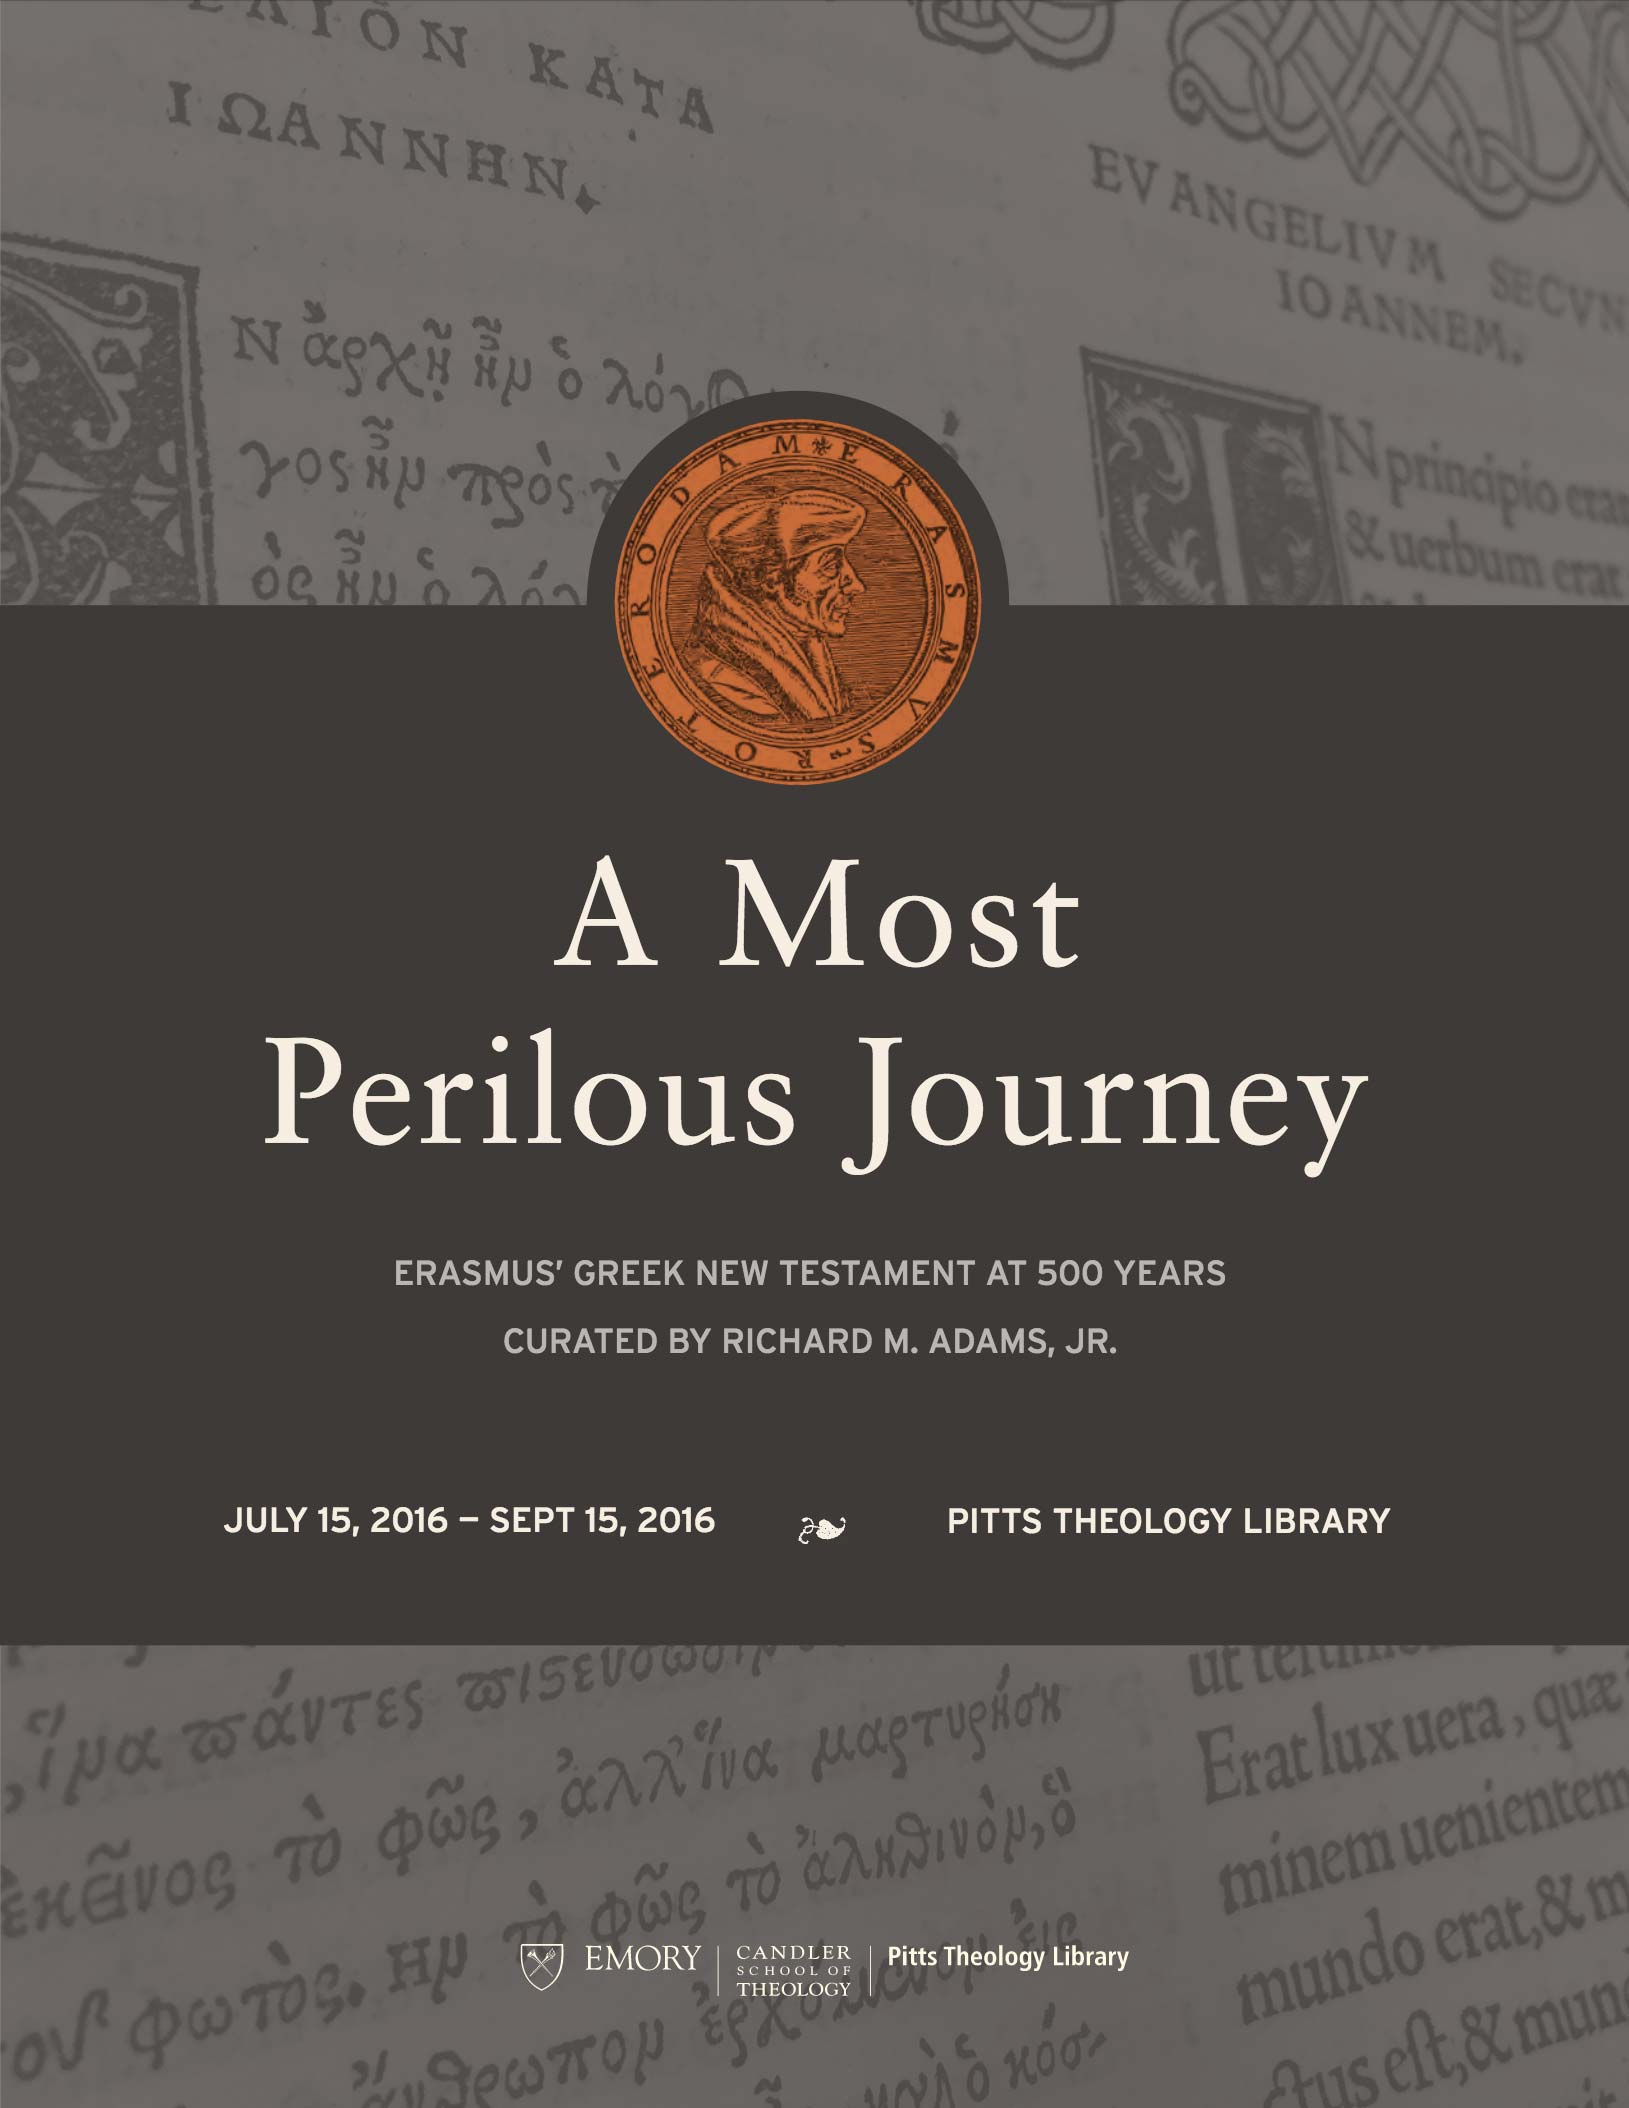 A Most Perilous Journey: Erasmus' Greek New Testament at 500 Years